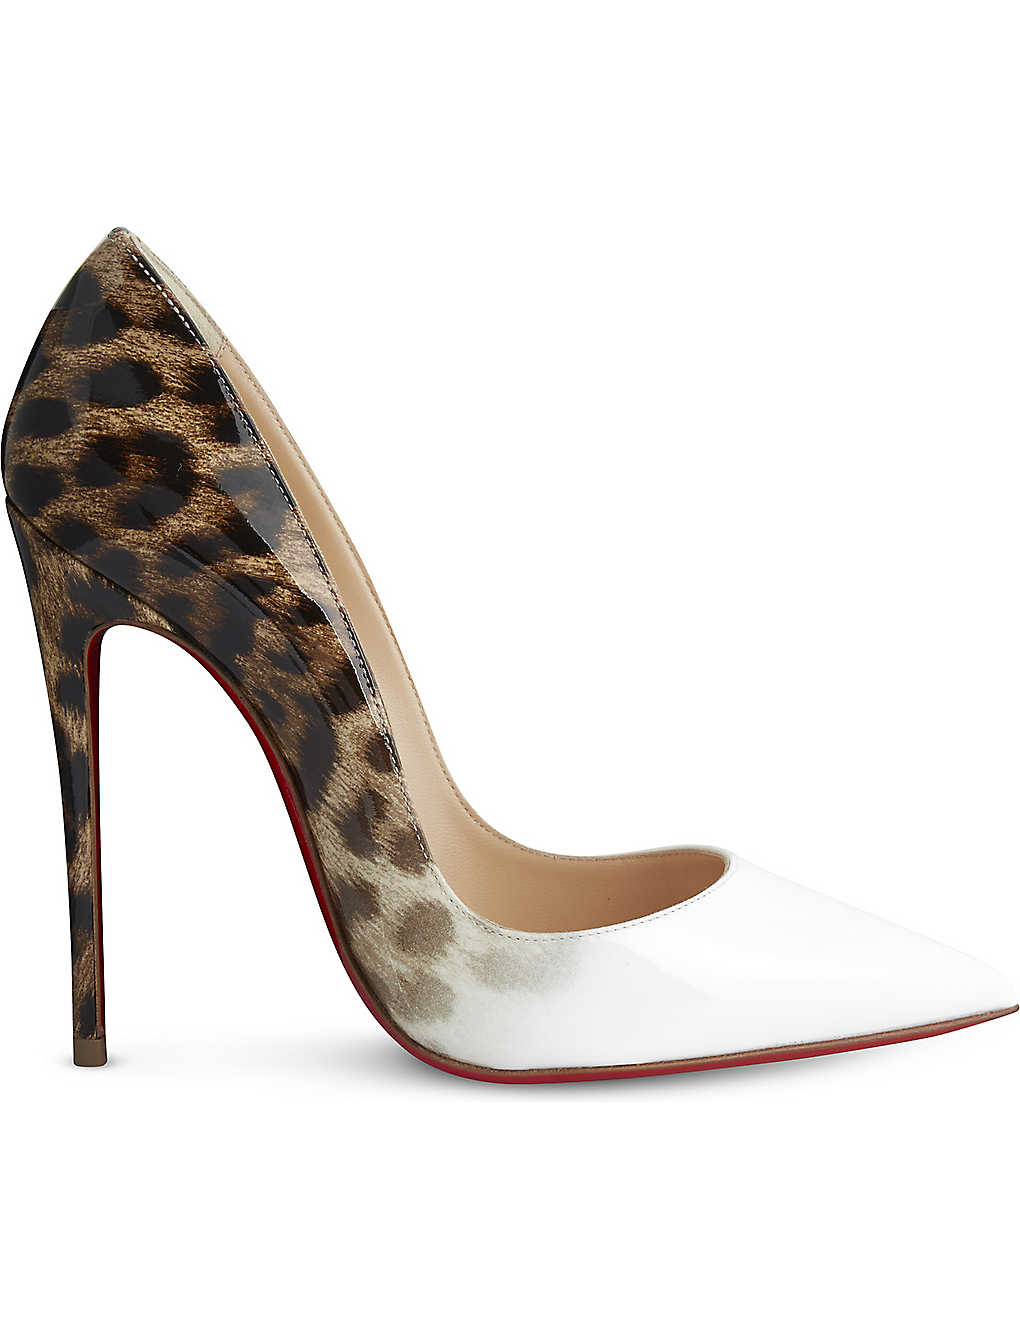 999e088fd728 CHRISTIAN LOUBOUTIN - So kate 120 patent degrade leopard ...